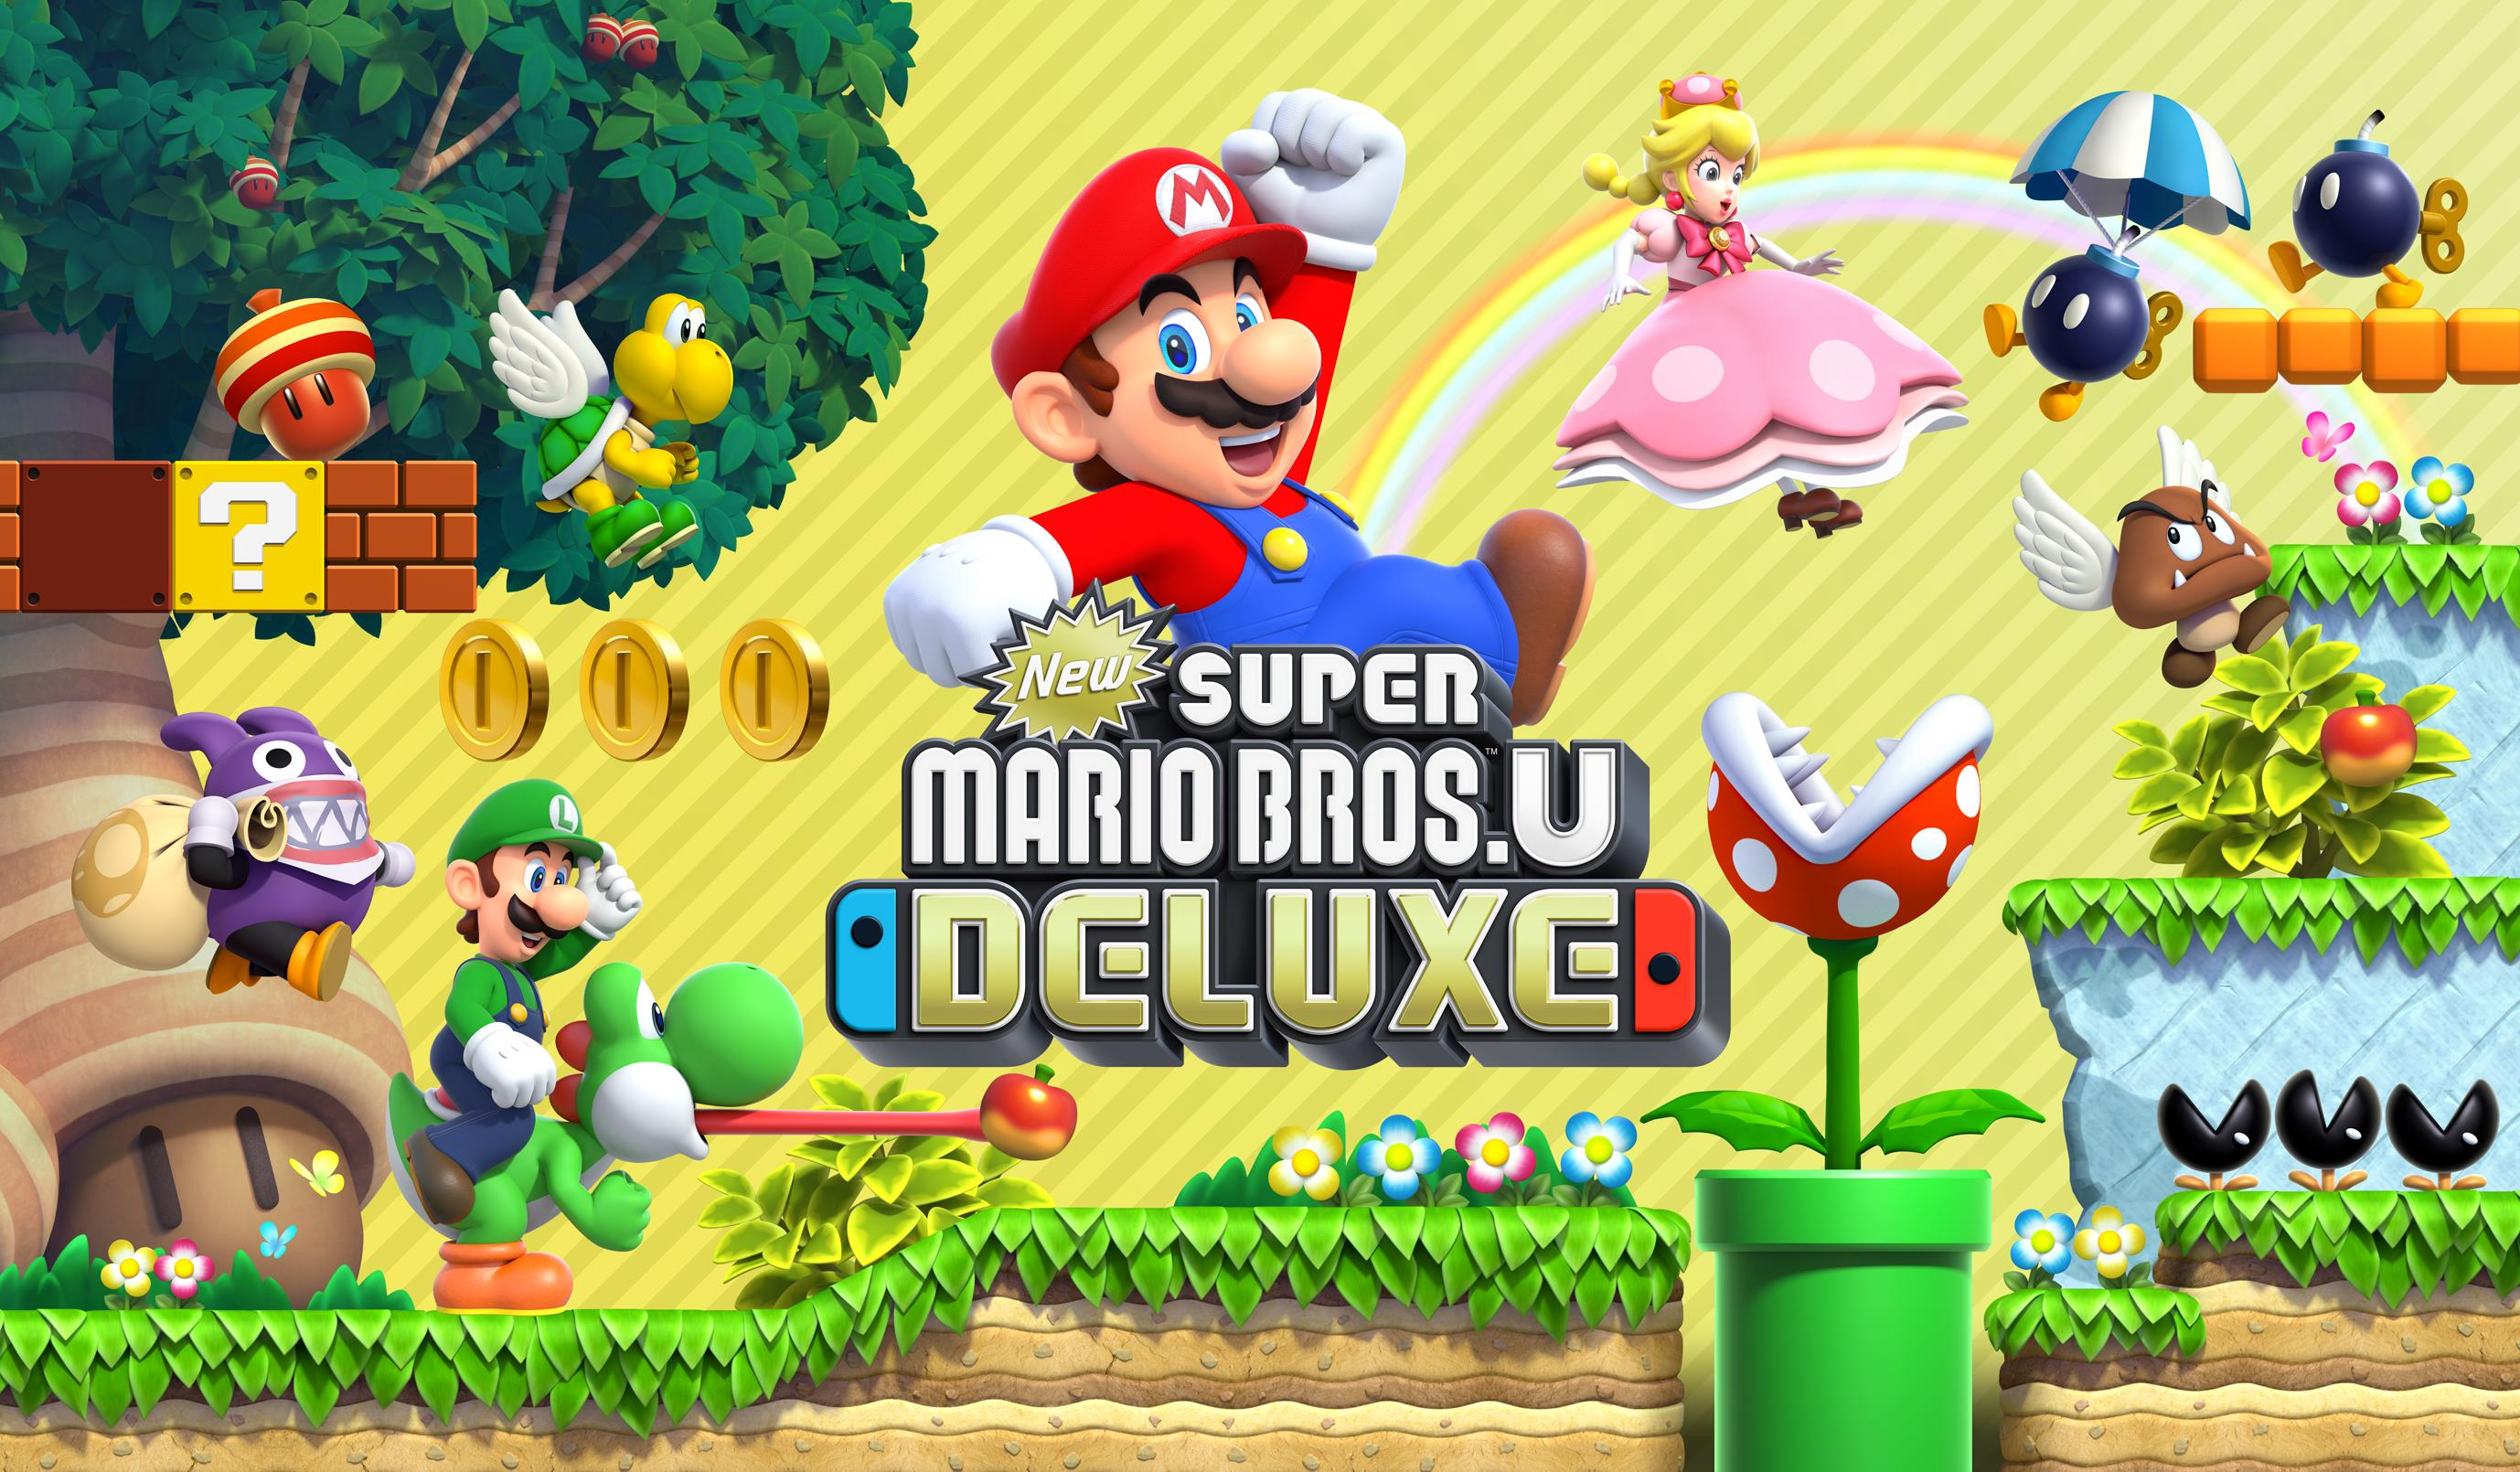 New Super Mario Bros U Deluxe Out Today Adds Playable Toadette